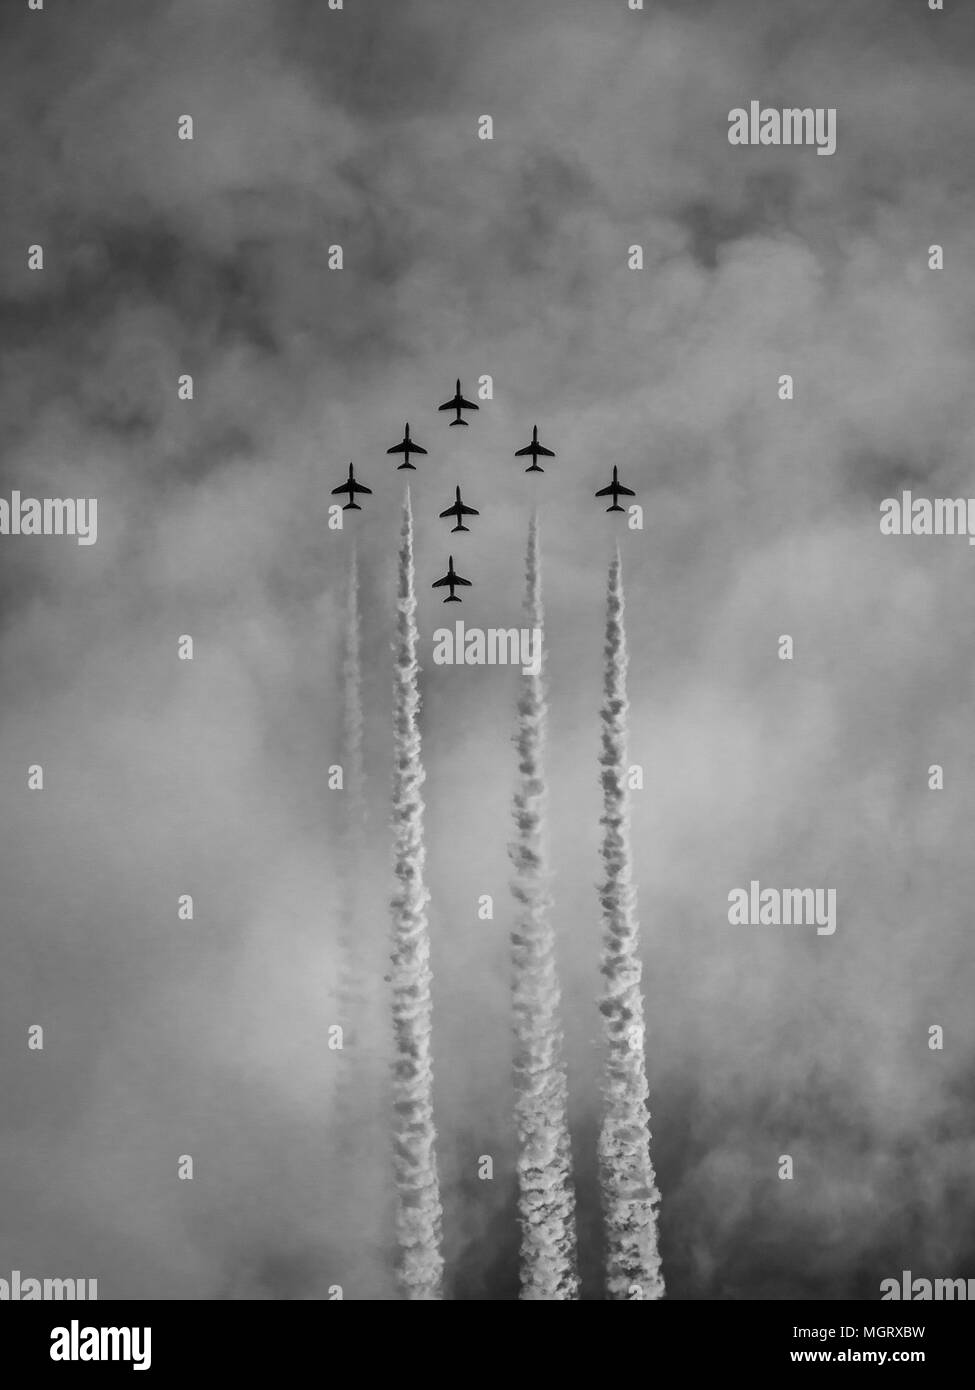 Airplanes in formation during an airshow - Stock Image